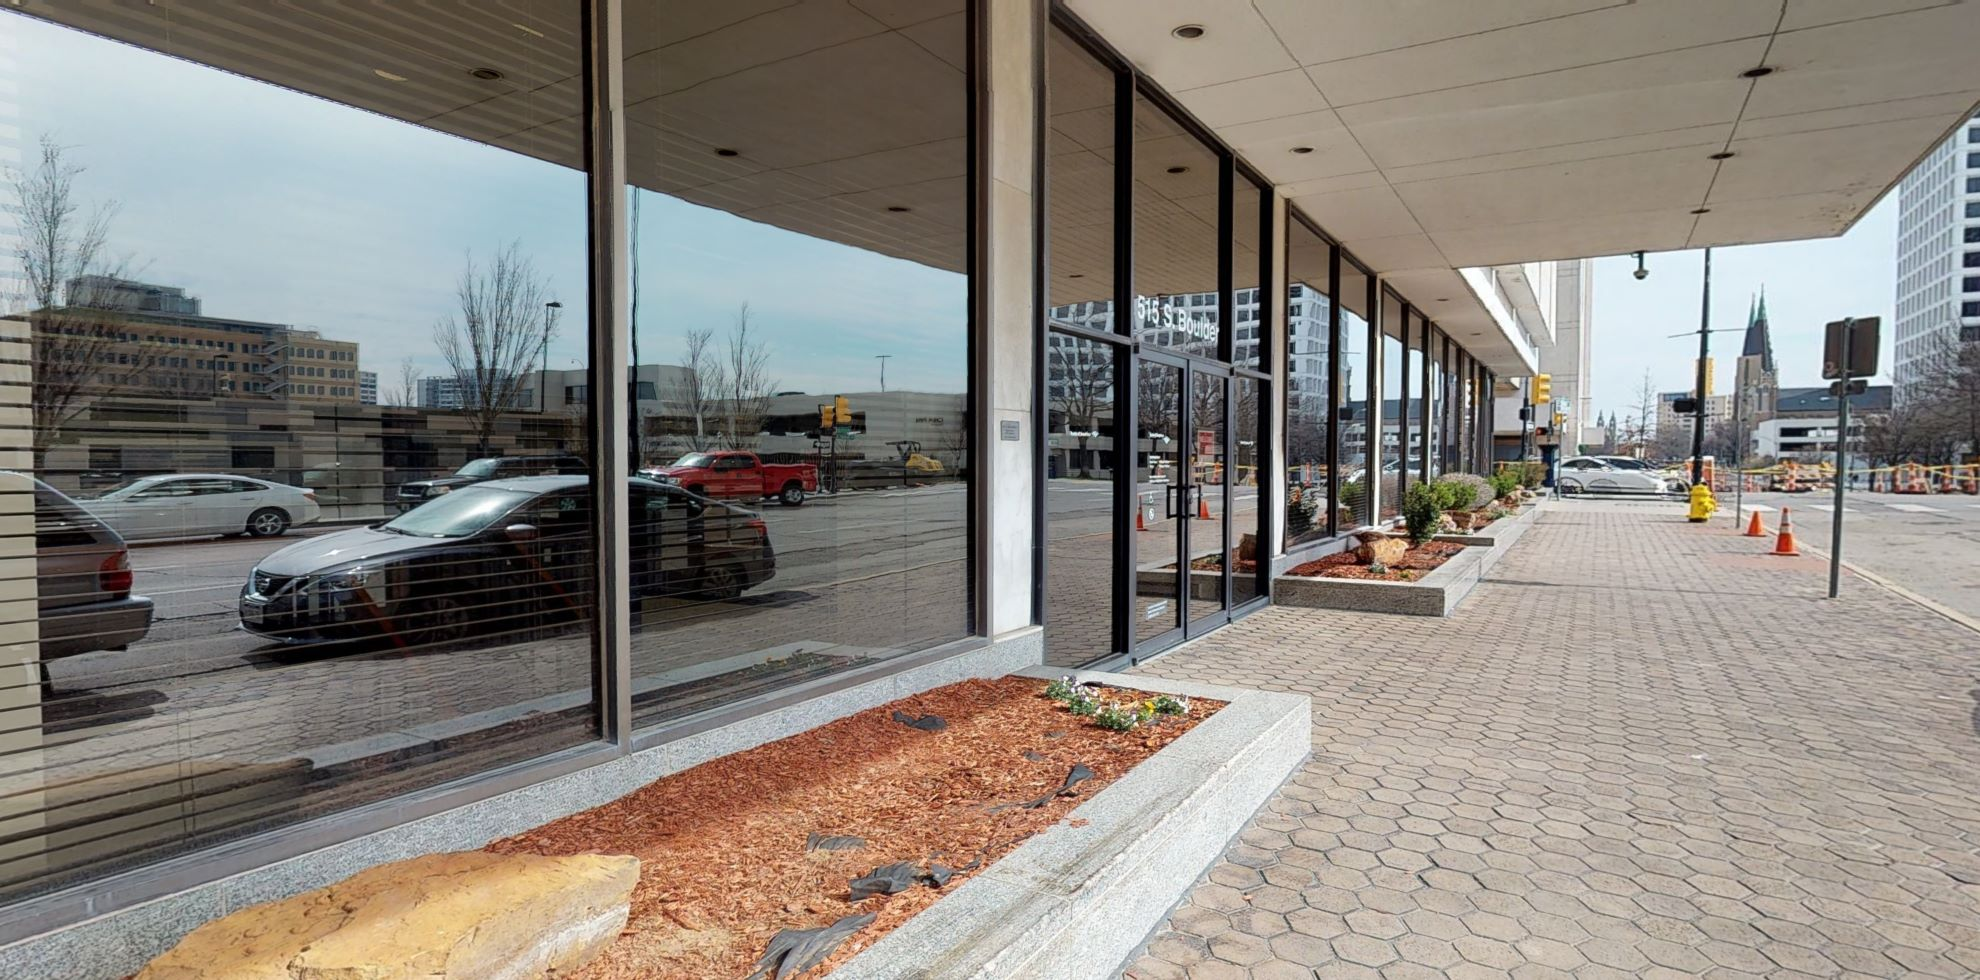 Bank of America financial center with walk-up ATM | 515 S Boulder Ave, Tulsa, OK 74103